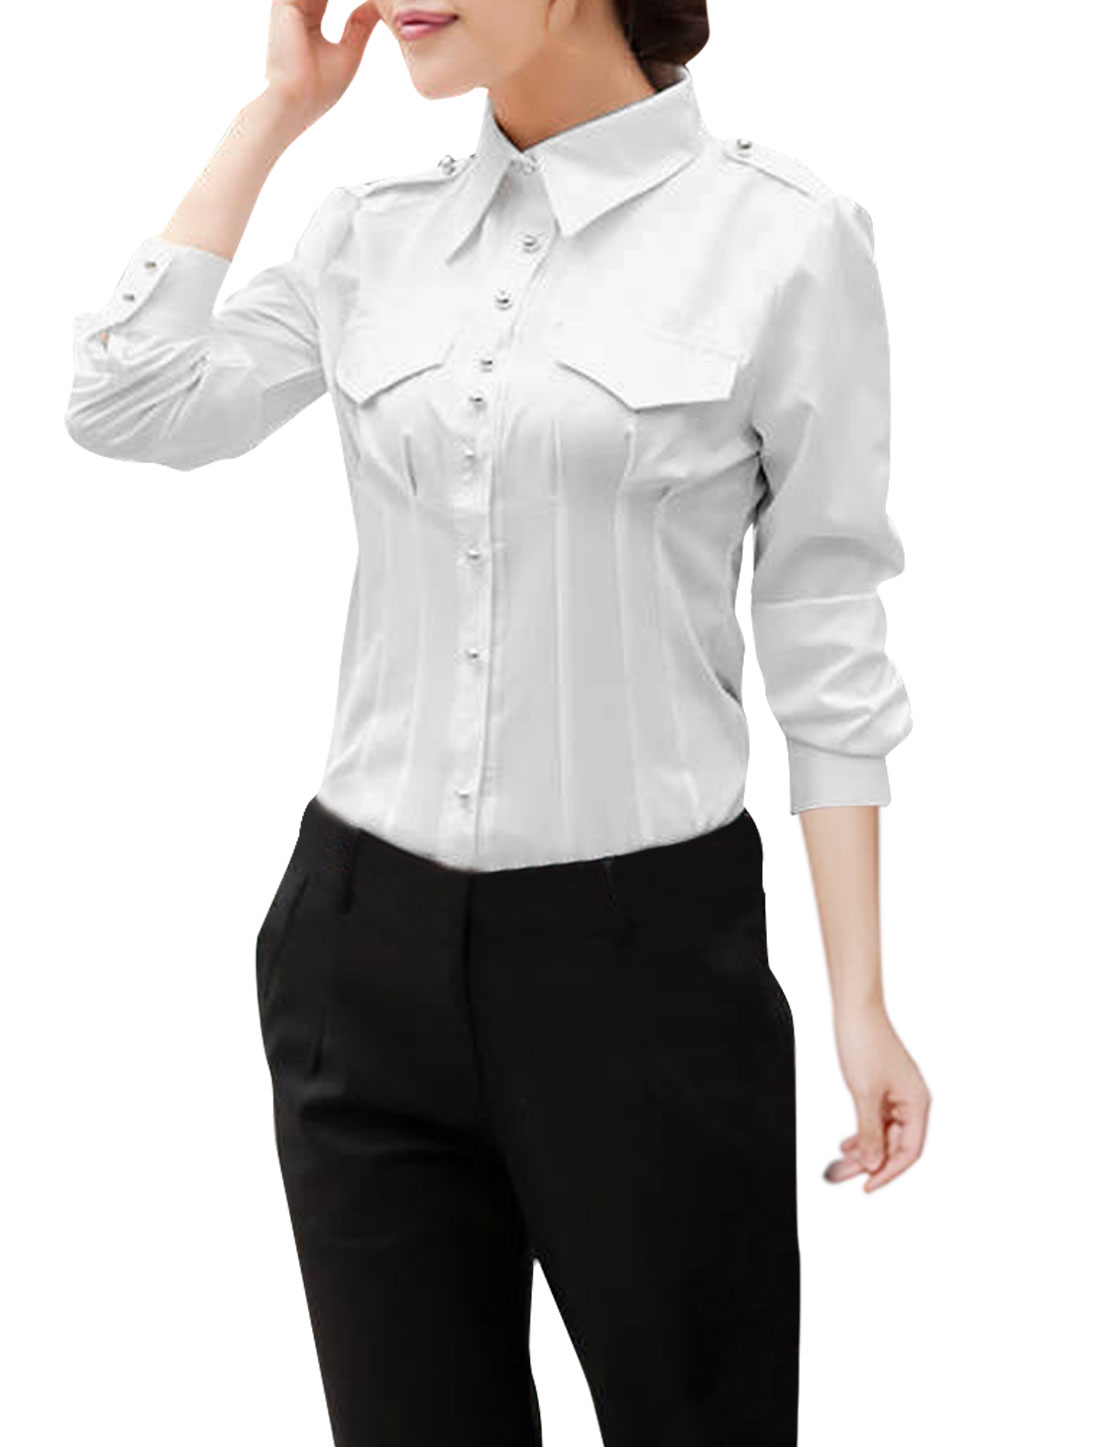 Women Point Collar Long Sleeve Buttoned Cuffs Shirt White M